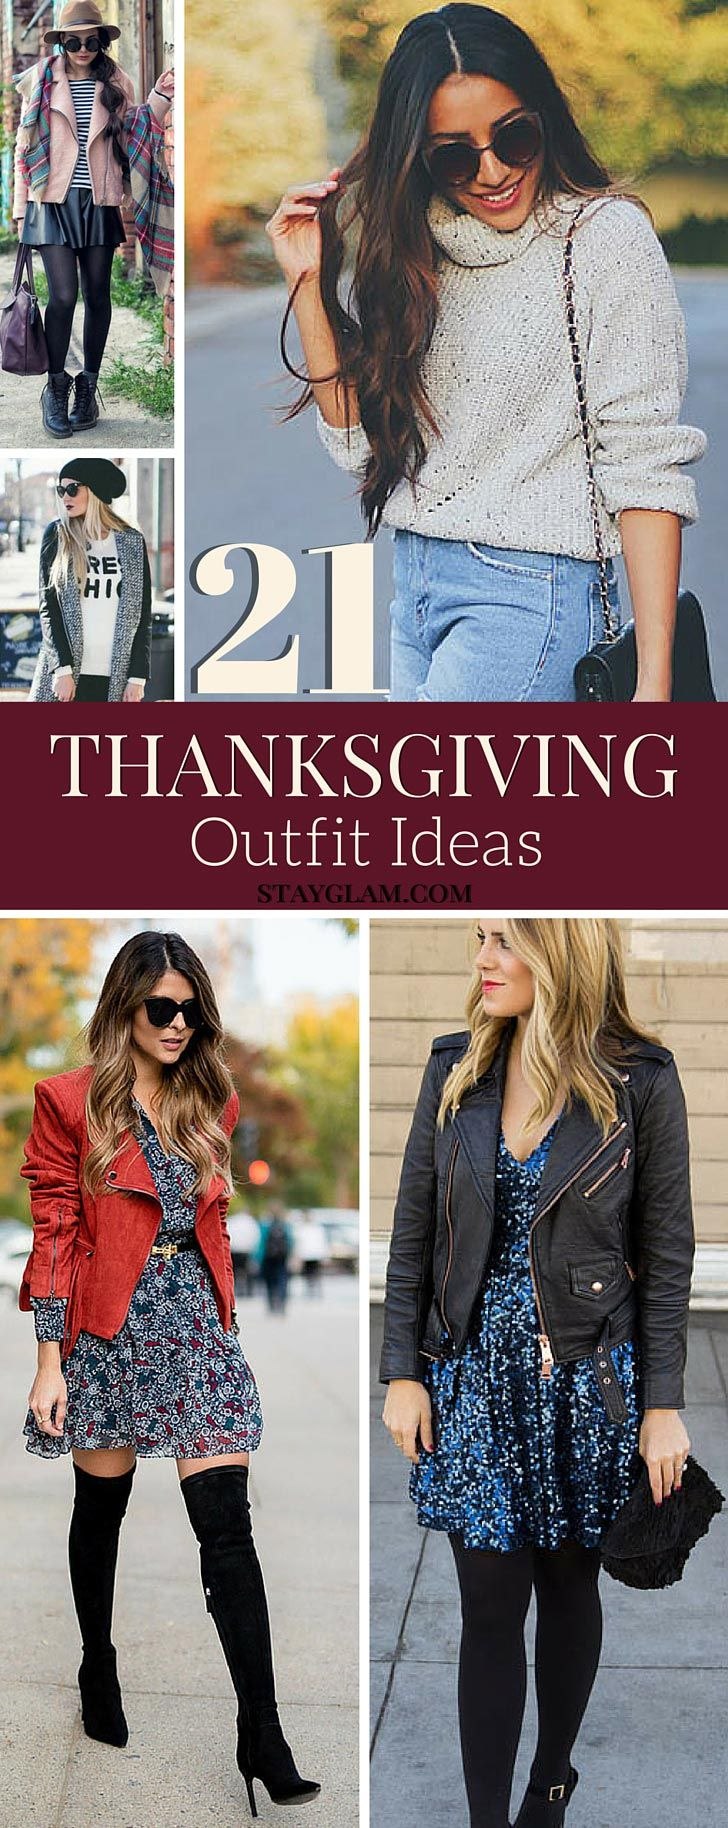 21 Comfy & Stylish Thanksgiving Outfit Ideas